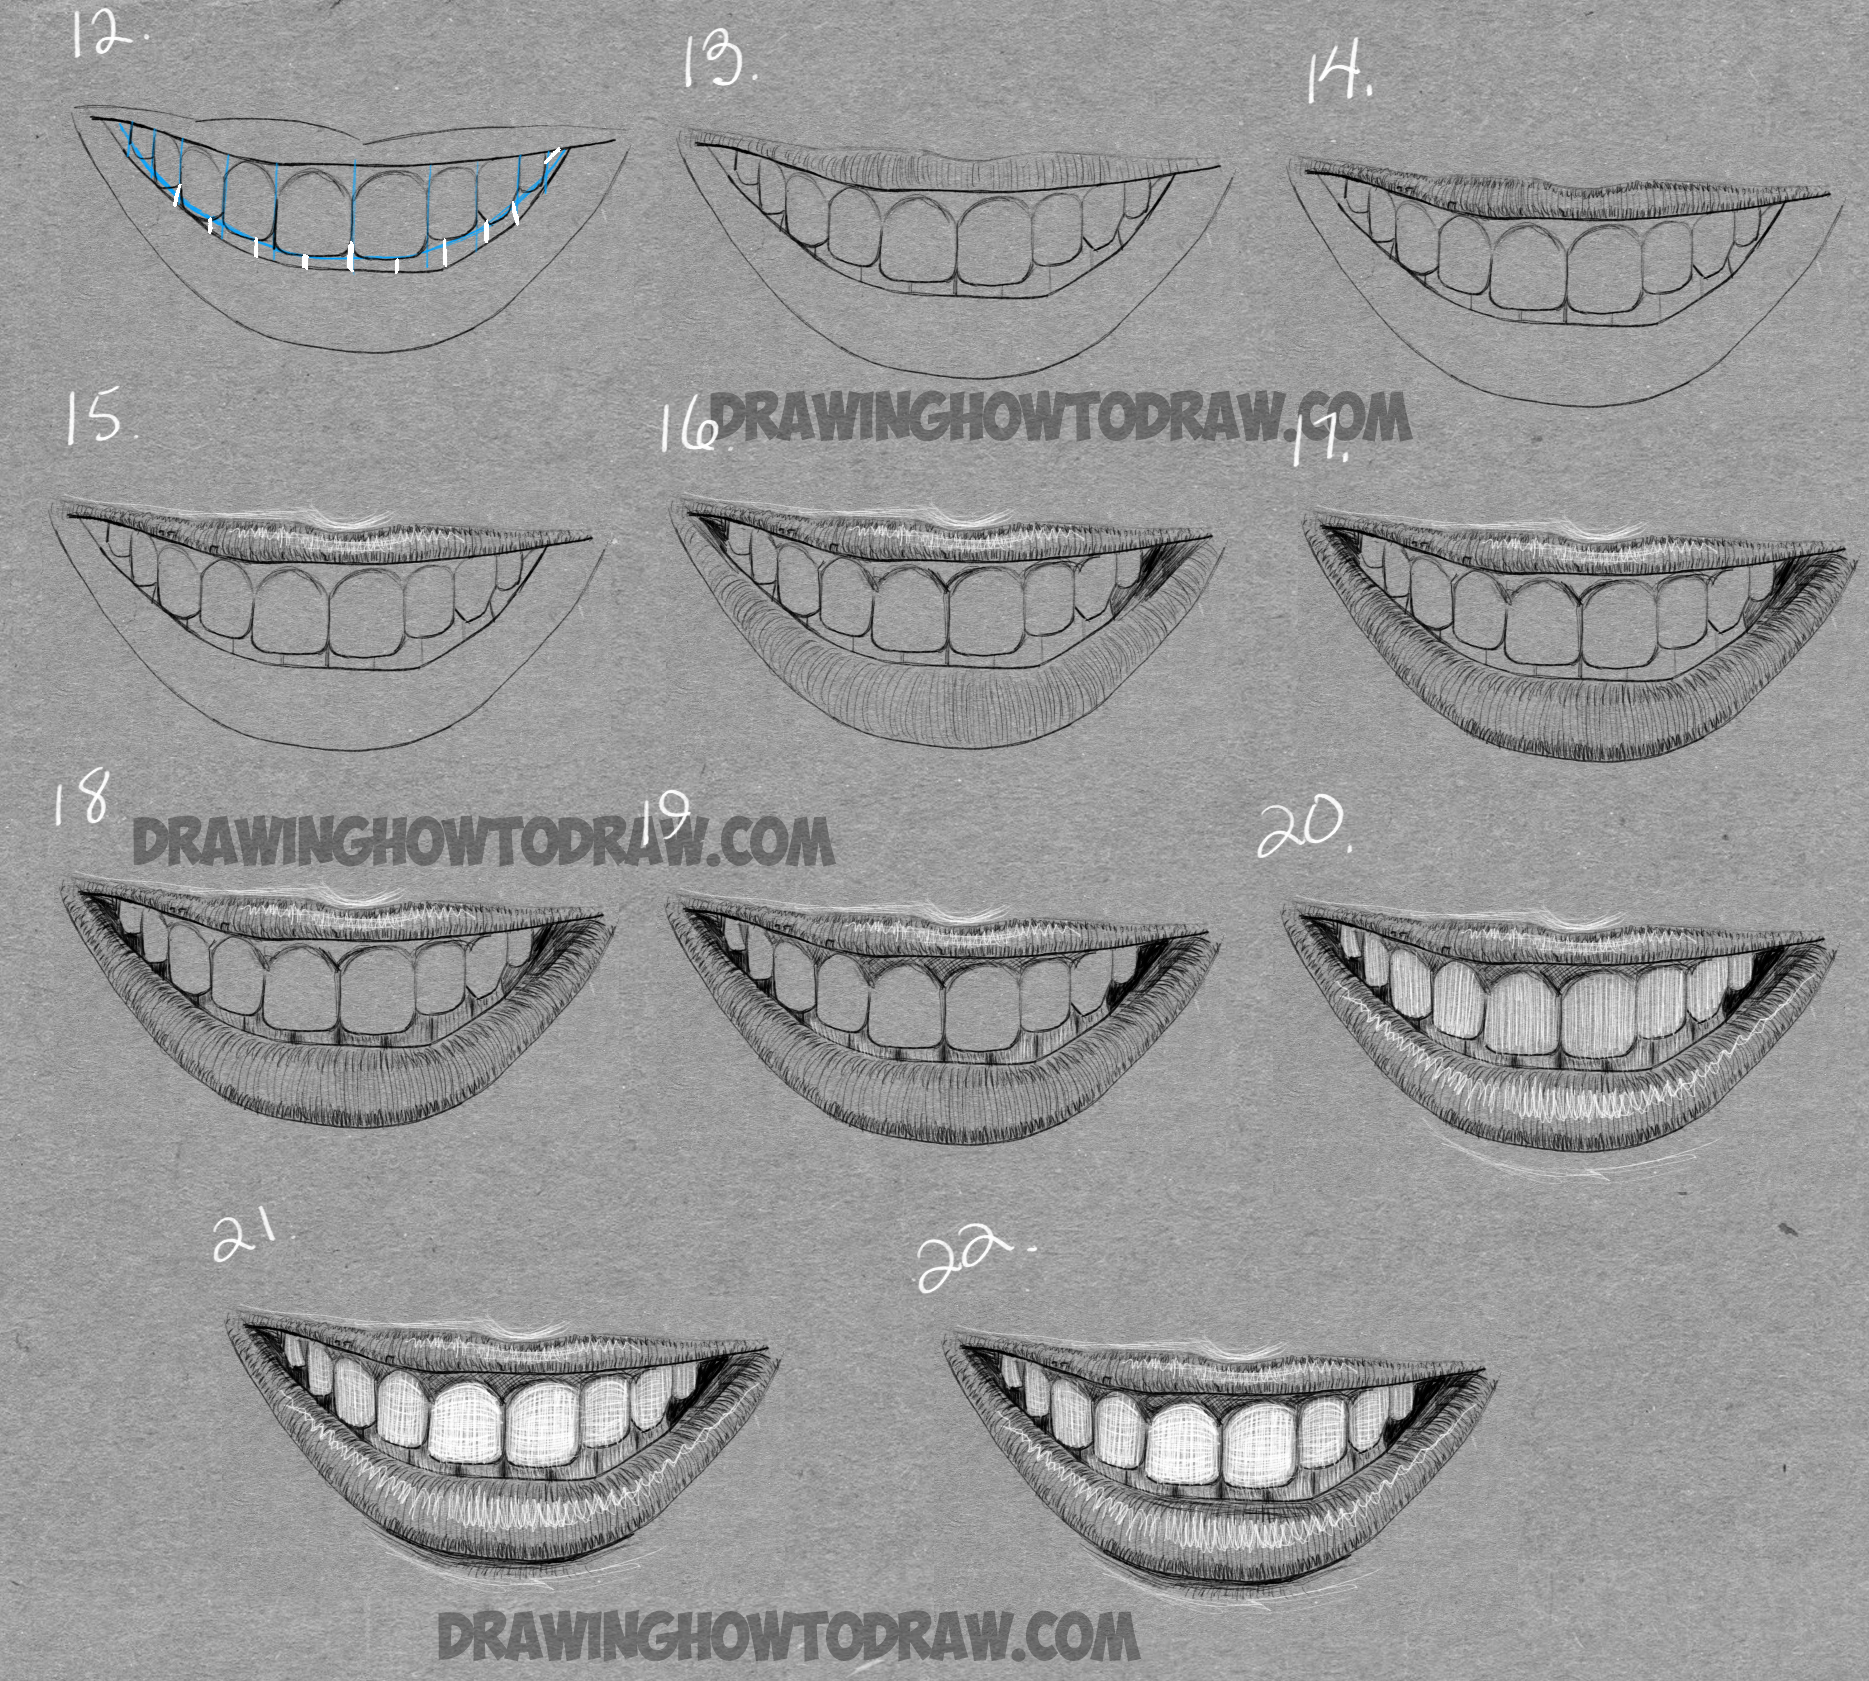 How to Draw a Mouth Full of Teeth : Drawing a Smiling ... Pencil Drawings Of Lips Smiling